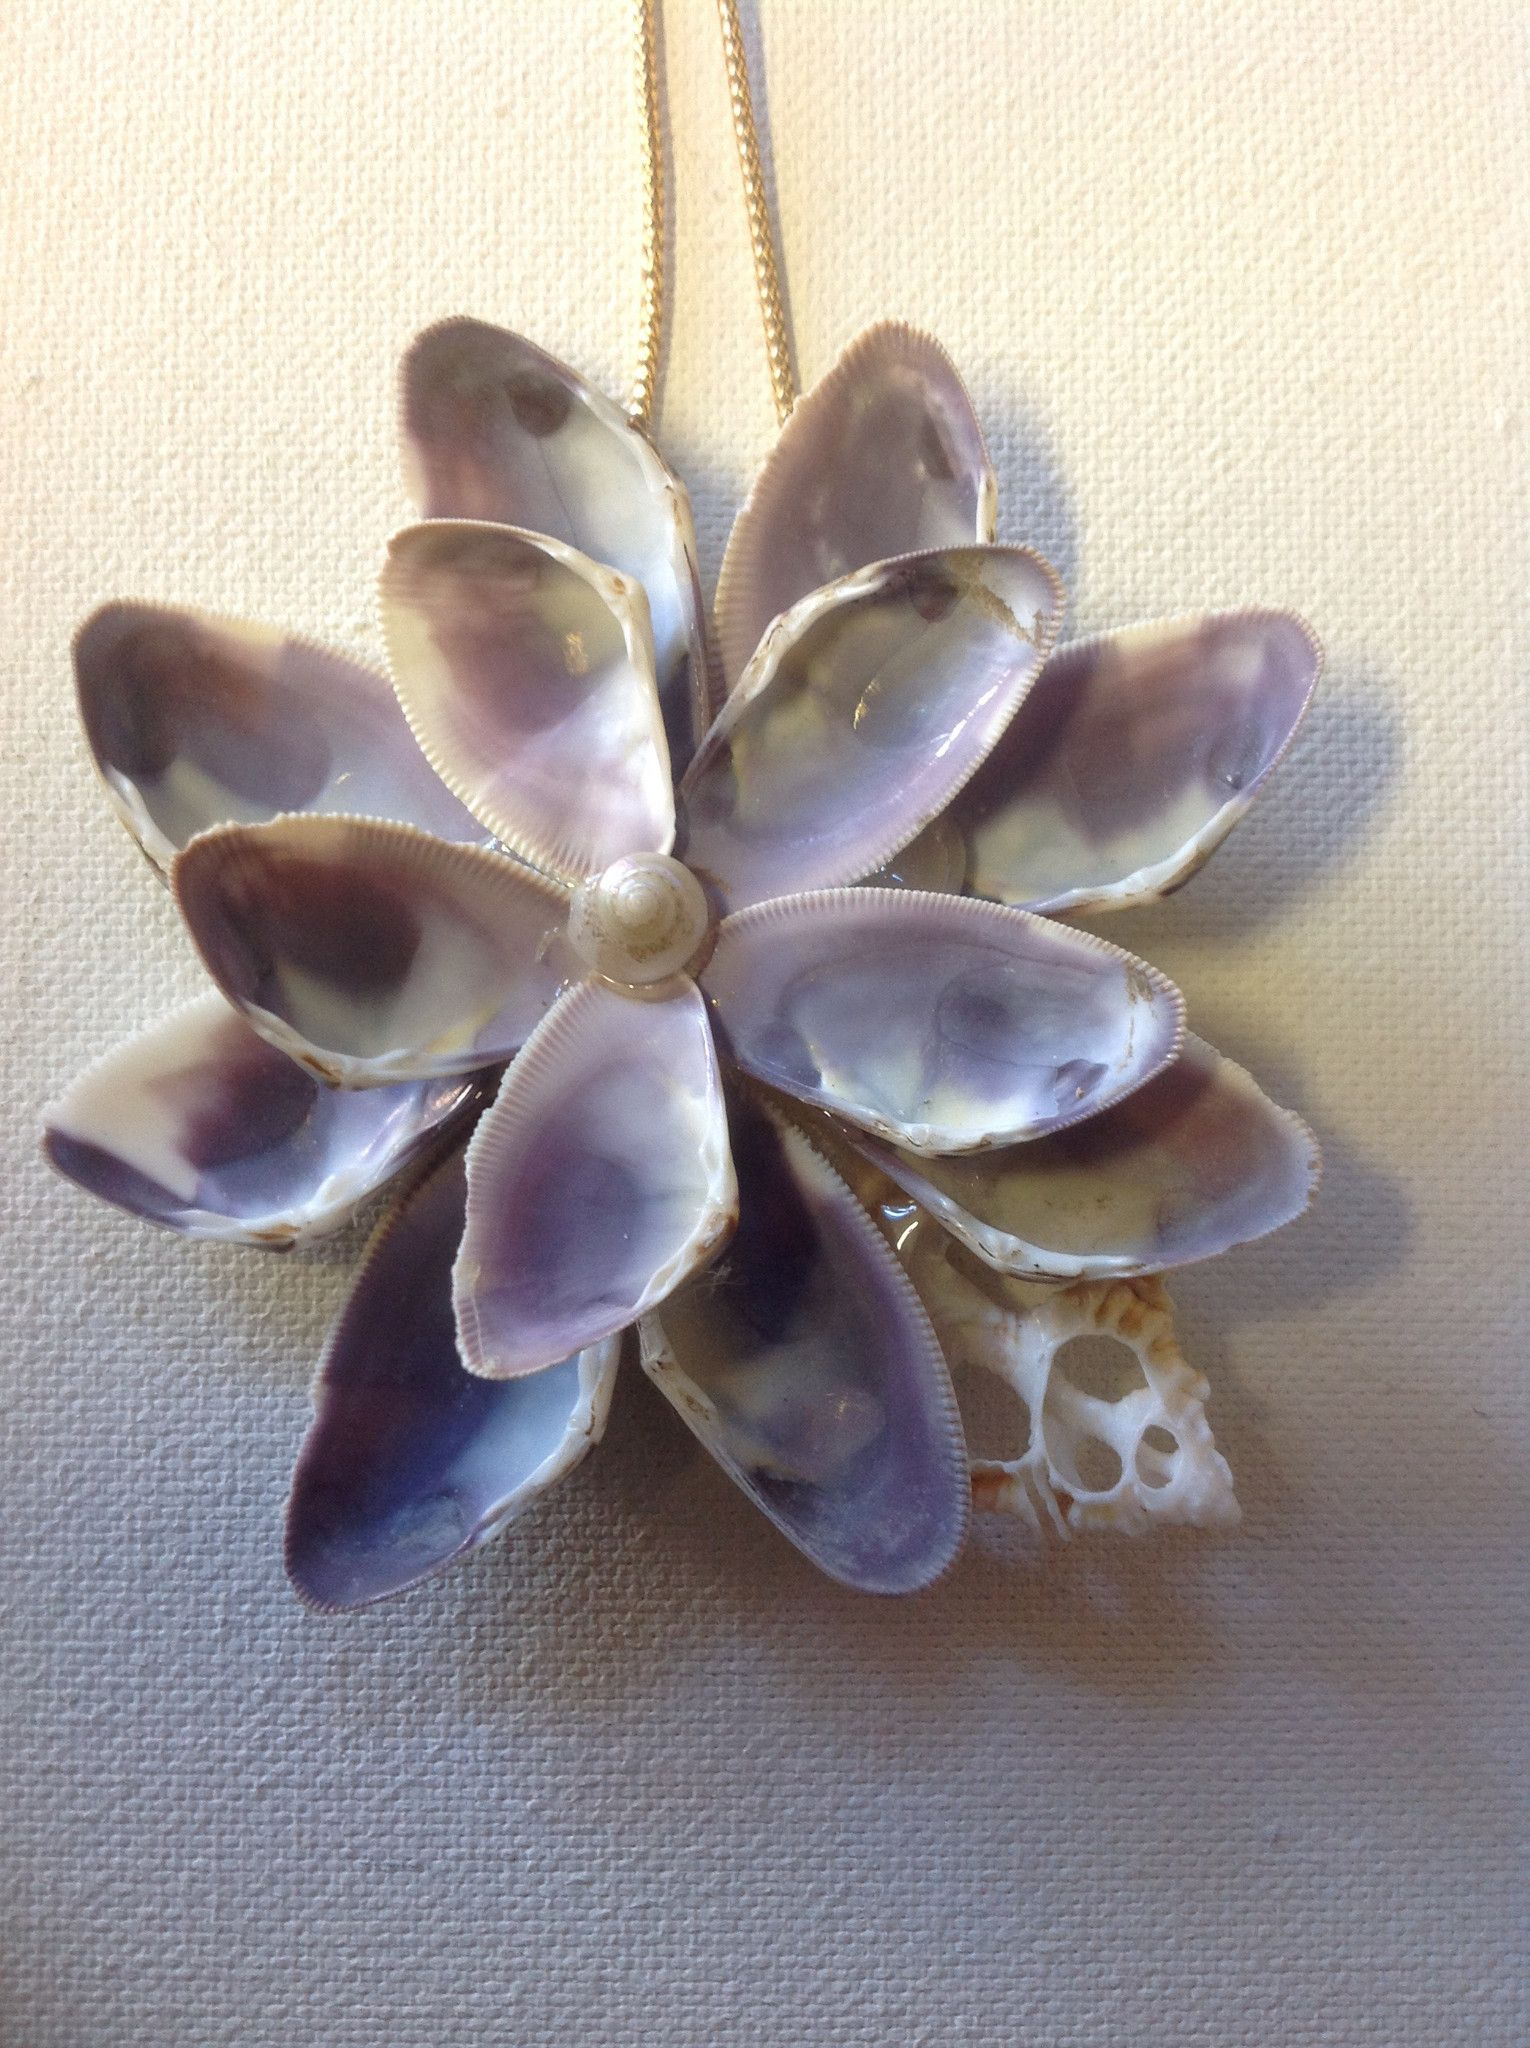 Seashell flower ornament flower ornaments shell and for Sea shell crafts